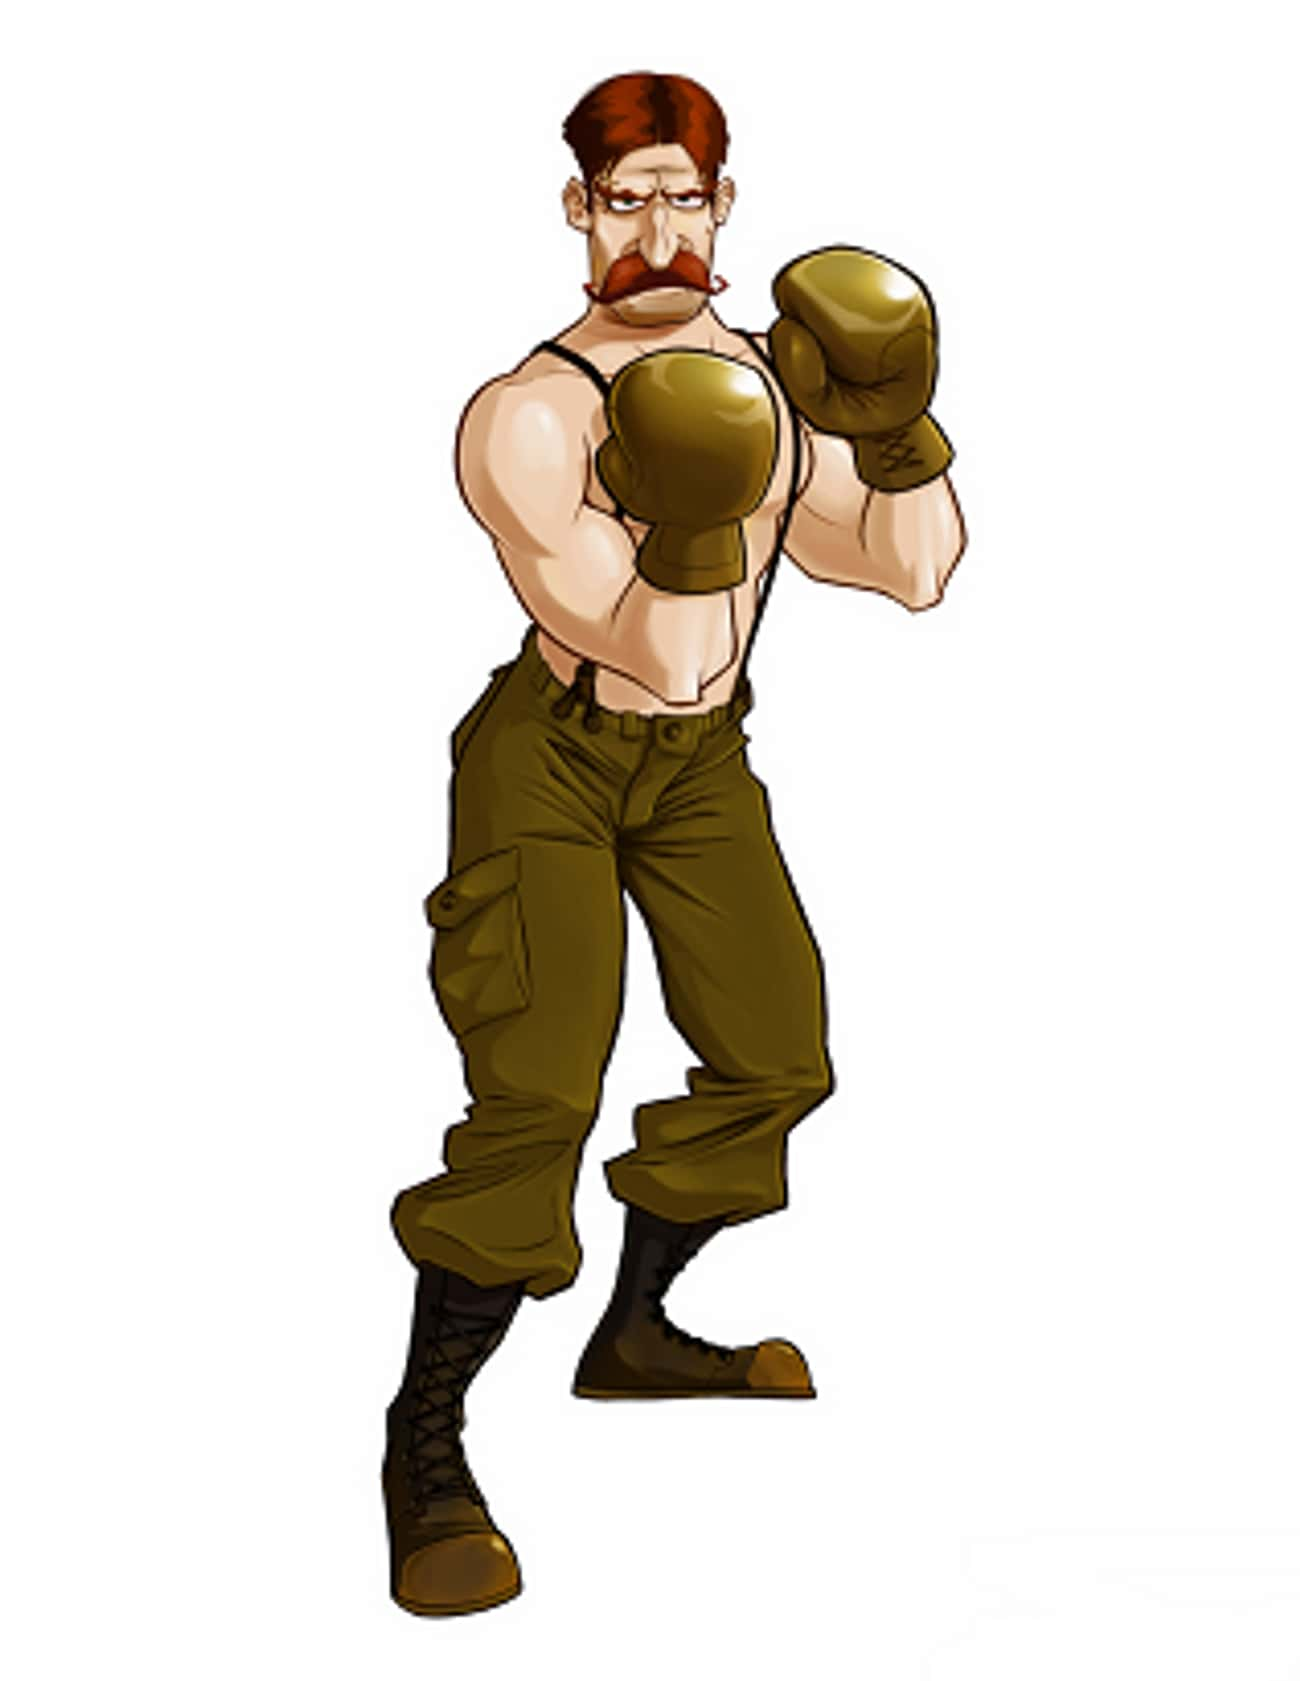 Von Kaiser is listed (or ranked) 1 on the list All Punch Out Characters: List of Punch Out Game Characters